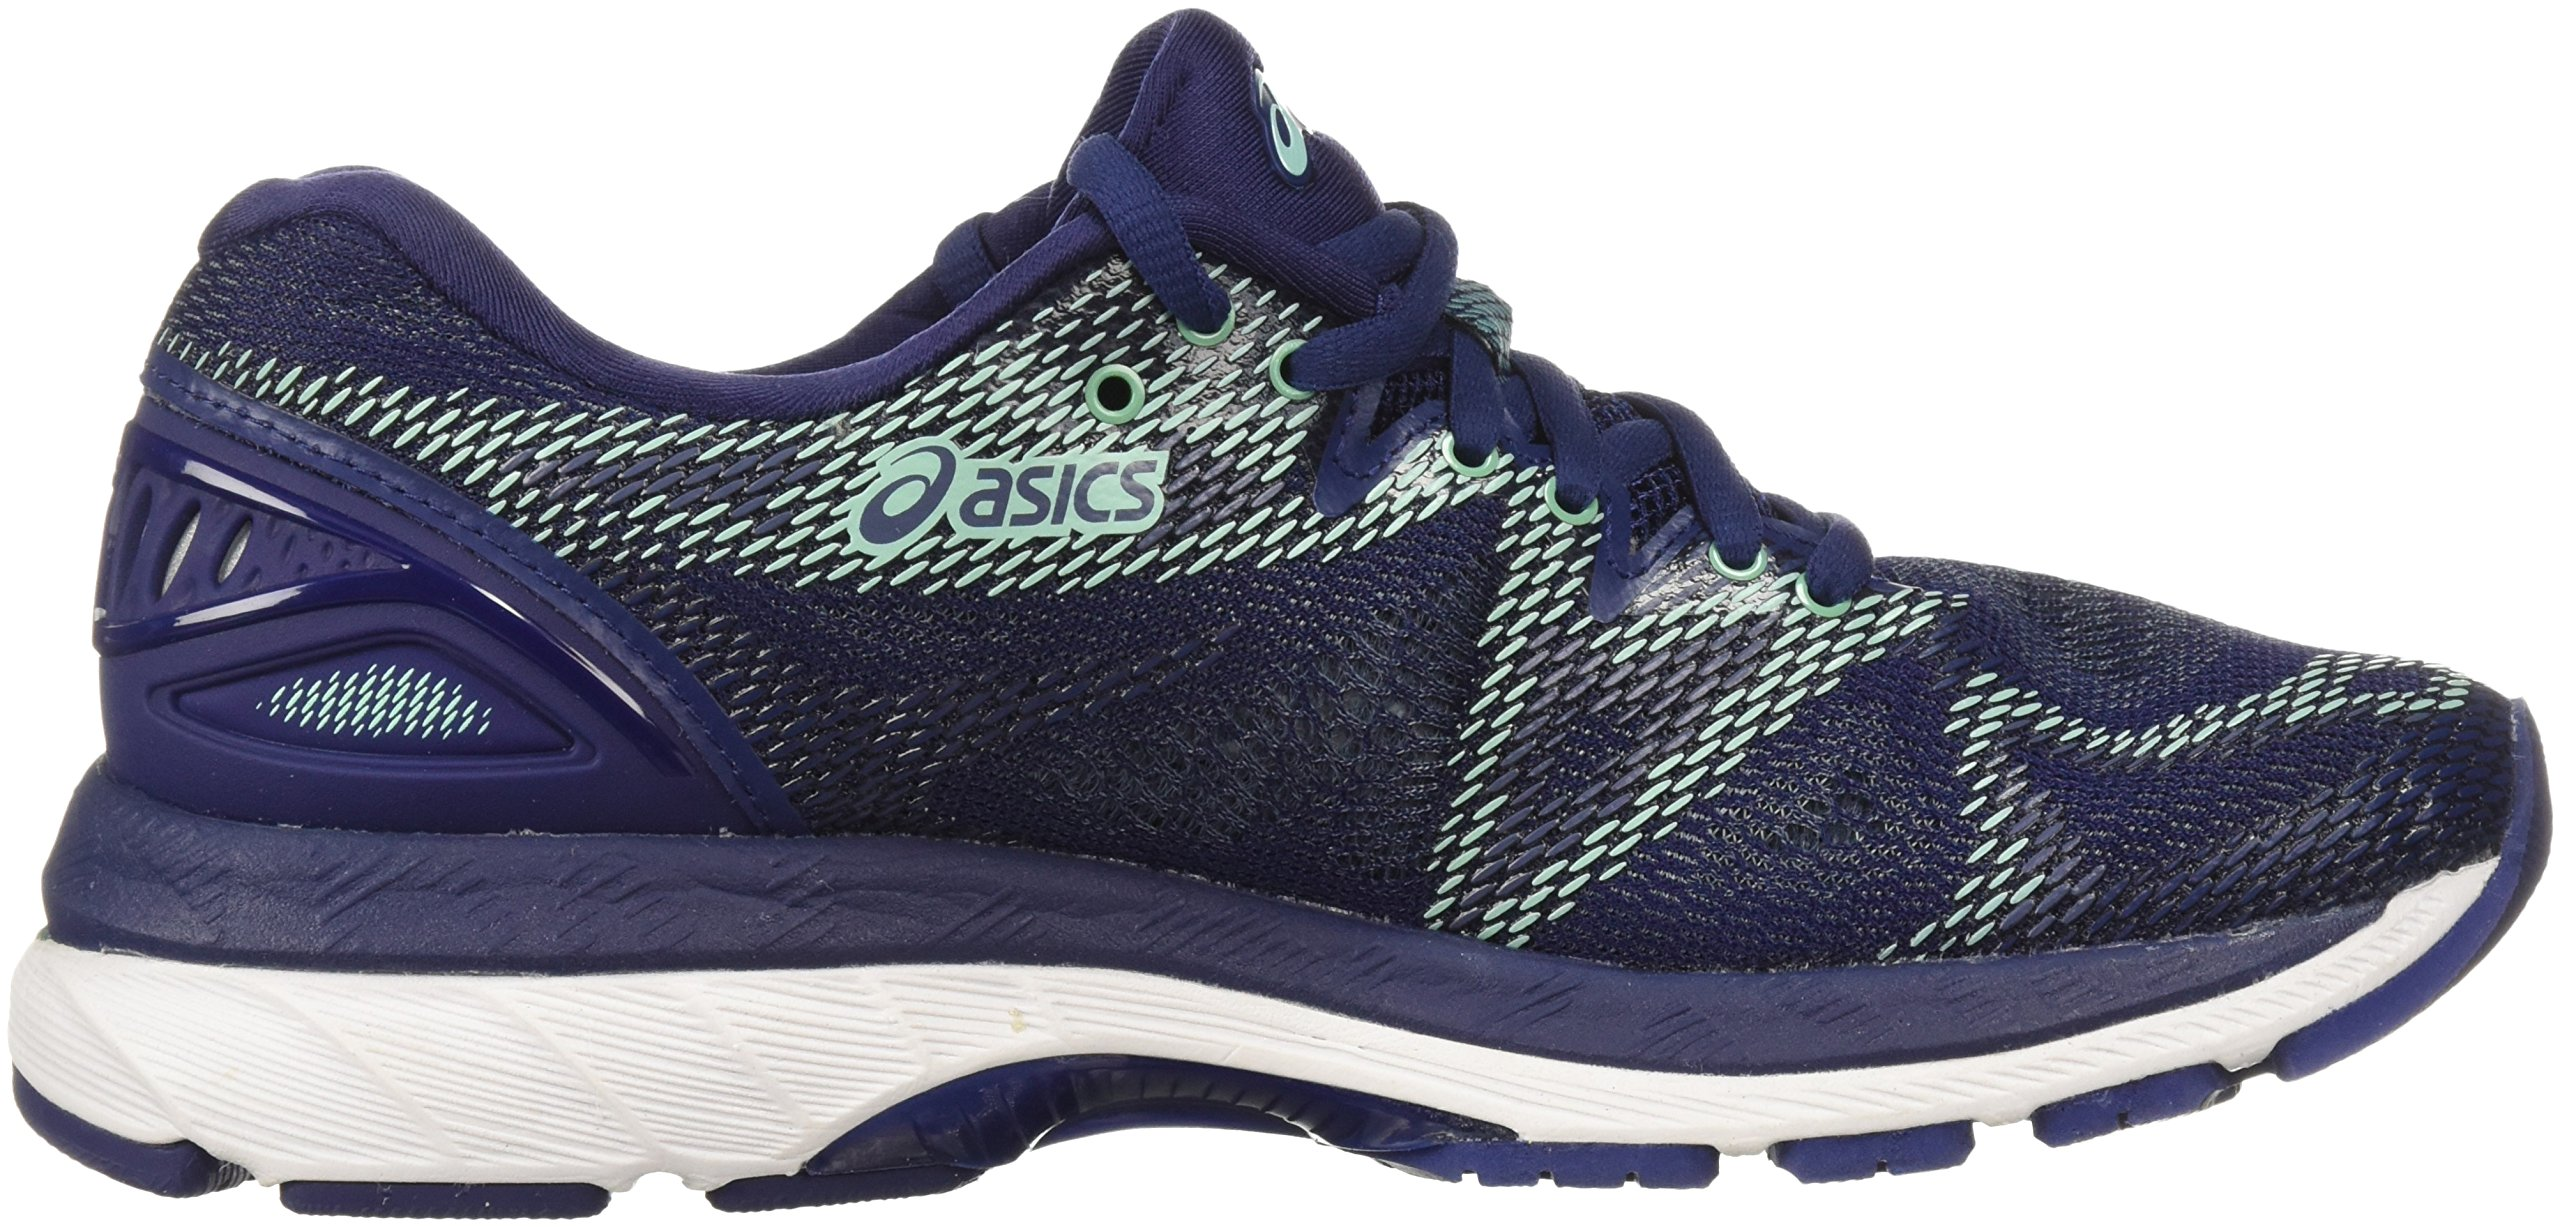 ASICS Women's Gel-Nimbus 20 Running Shoe, indigo blue/indigo blue/opal green, 12 D US by ASICS (Image #6)